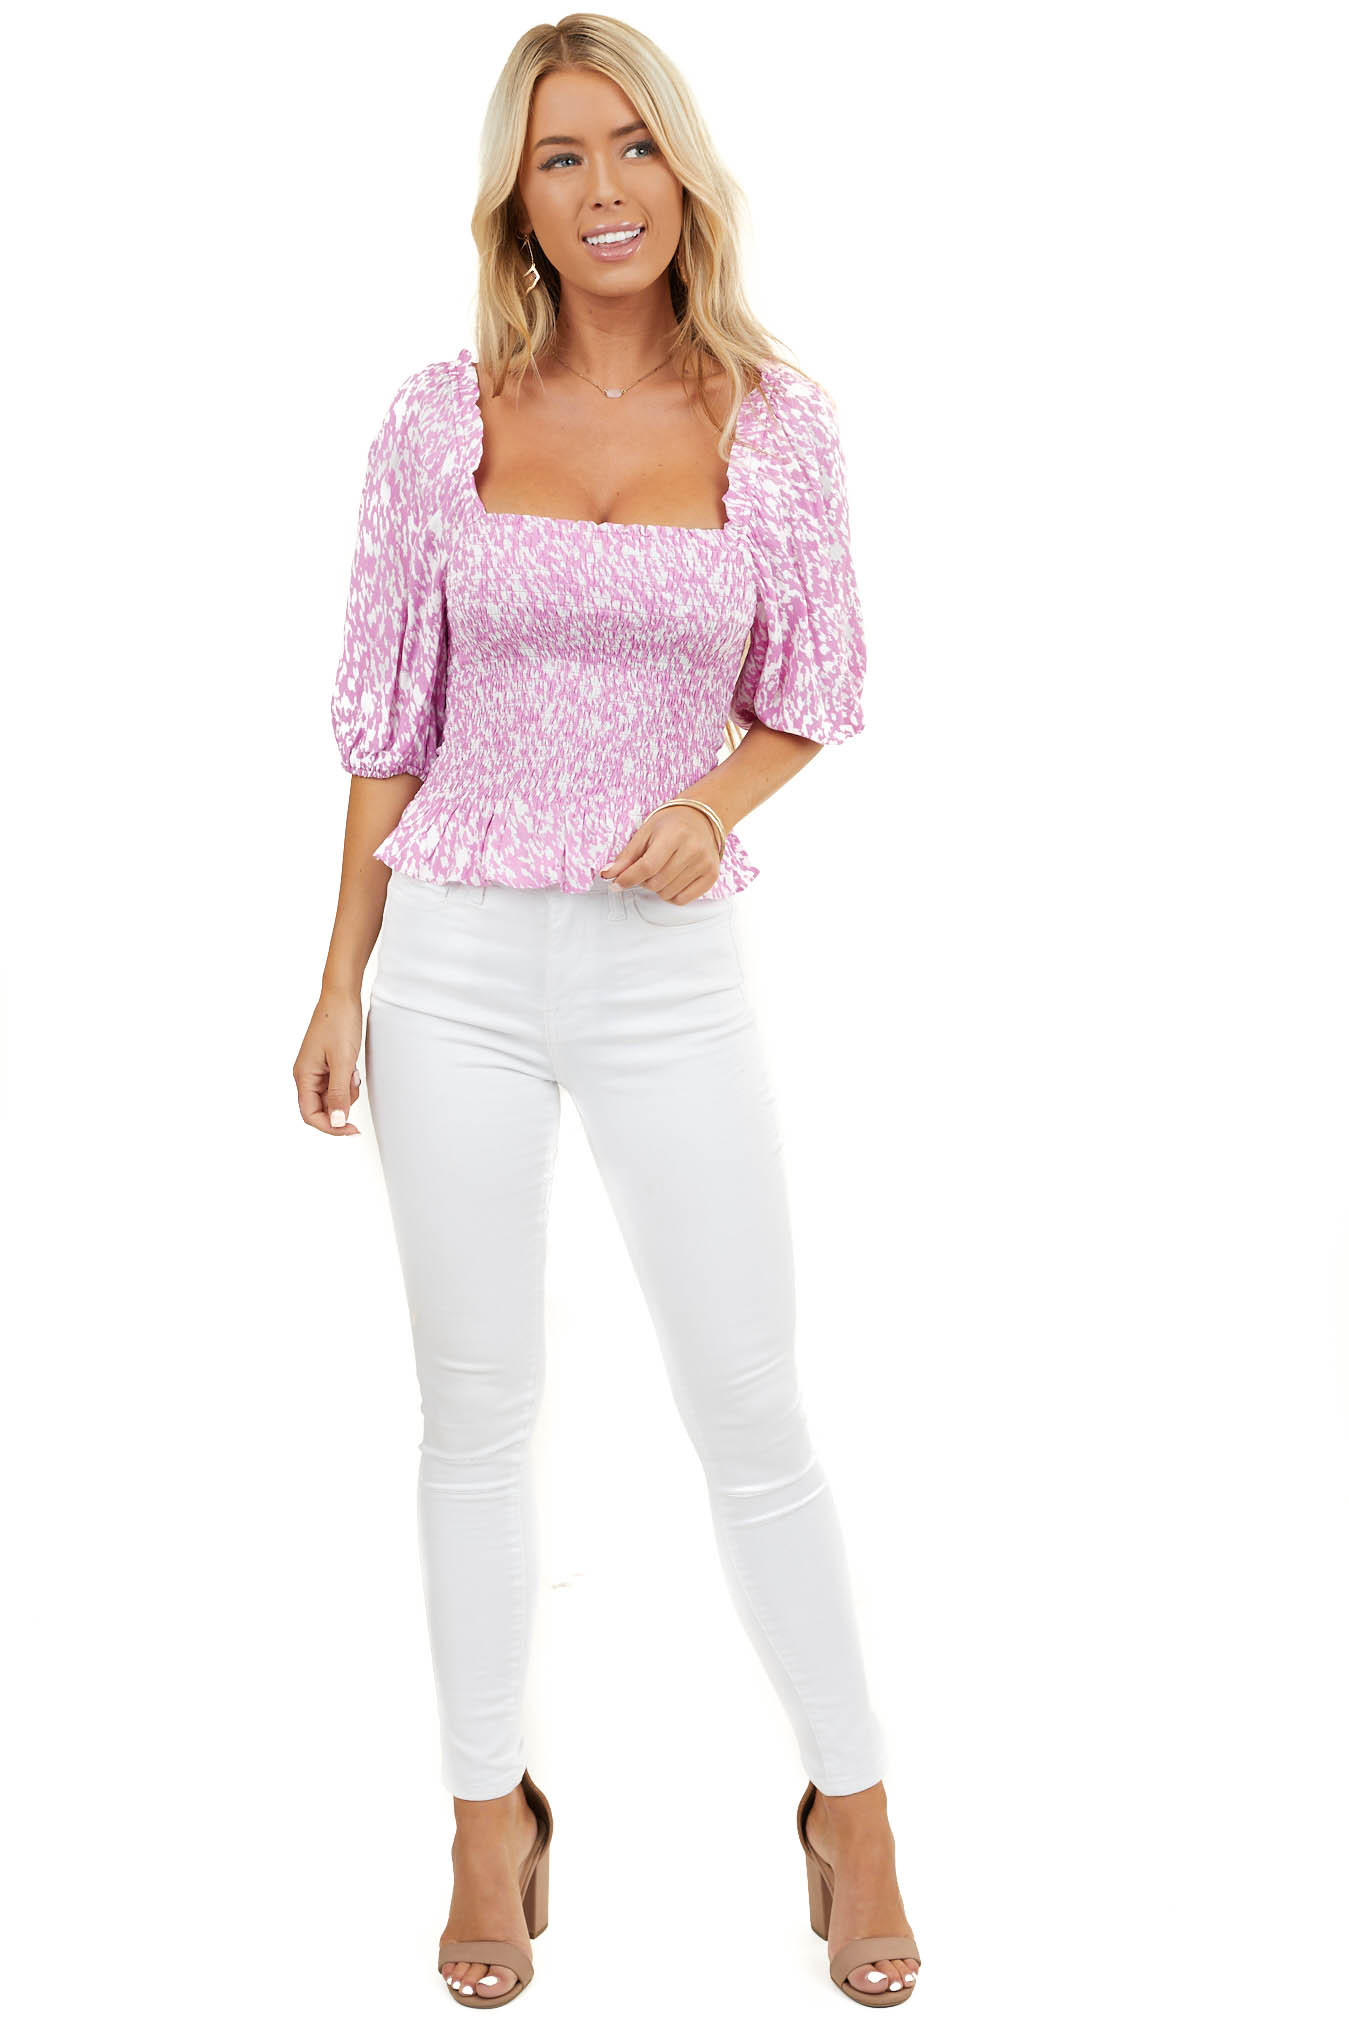 Magenta and White Patterned Smocked Top with Bubble Sleeves